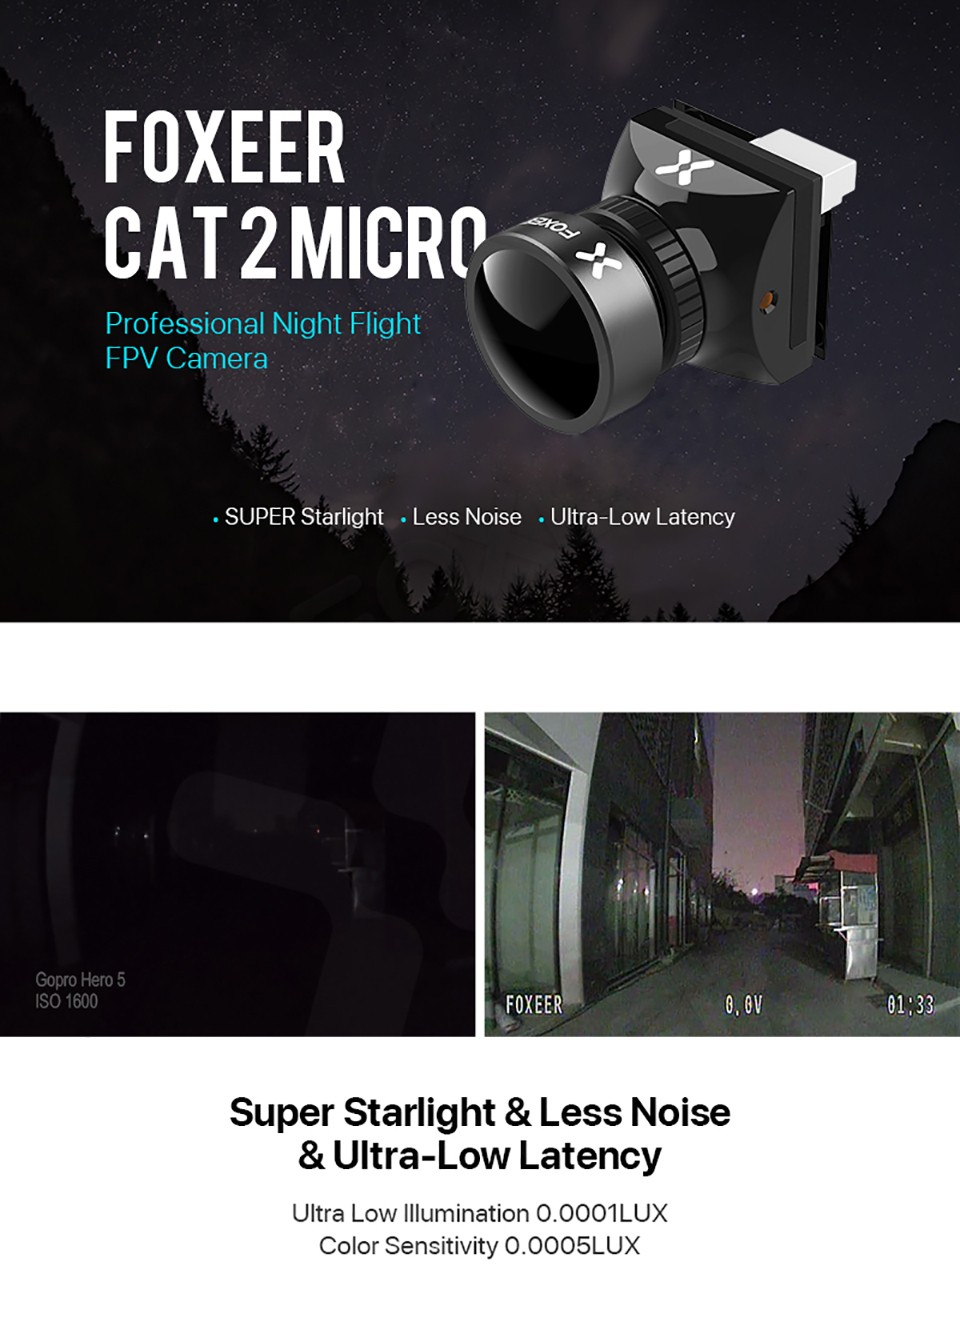 Foxeer Cat 2 Micro 1200TVL StarLight Low Latency FPV Camera (Pick your Color) 11